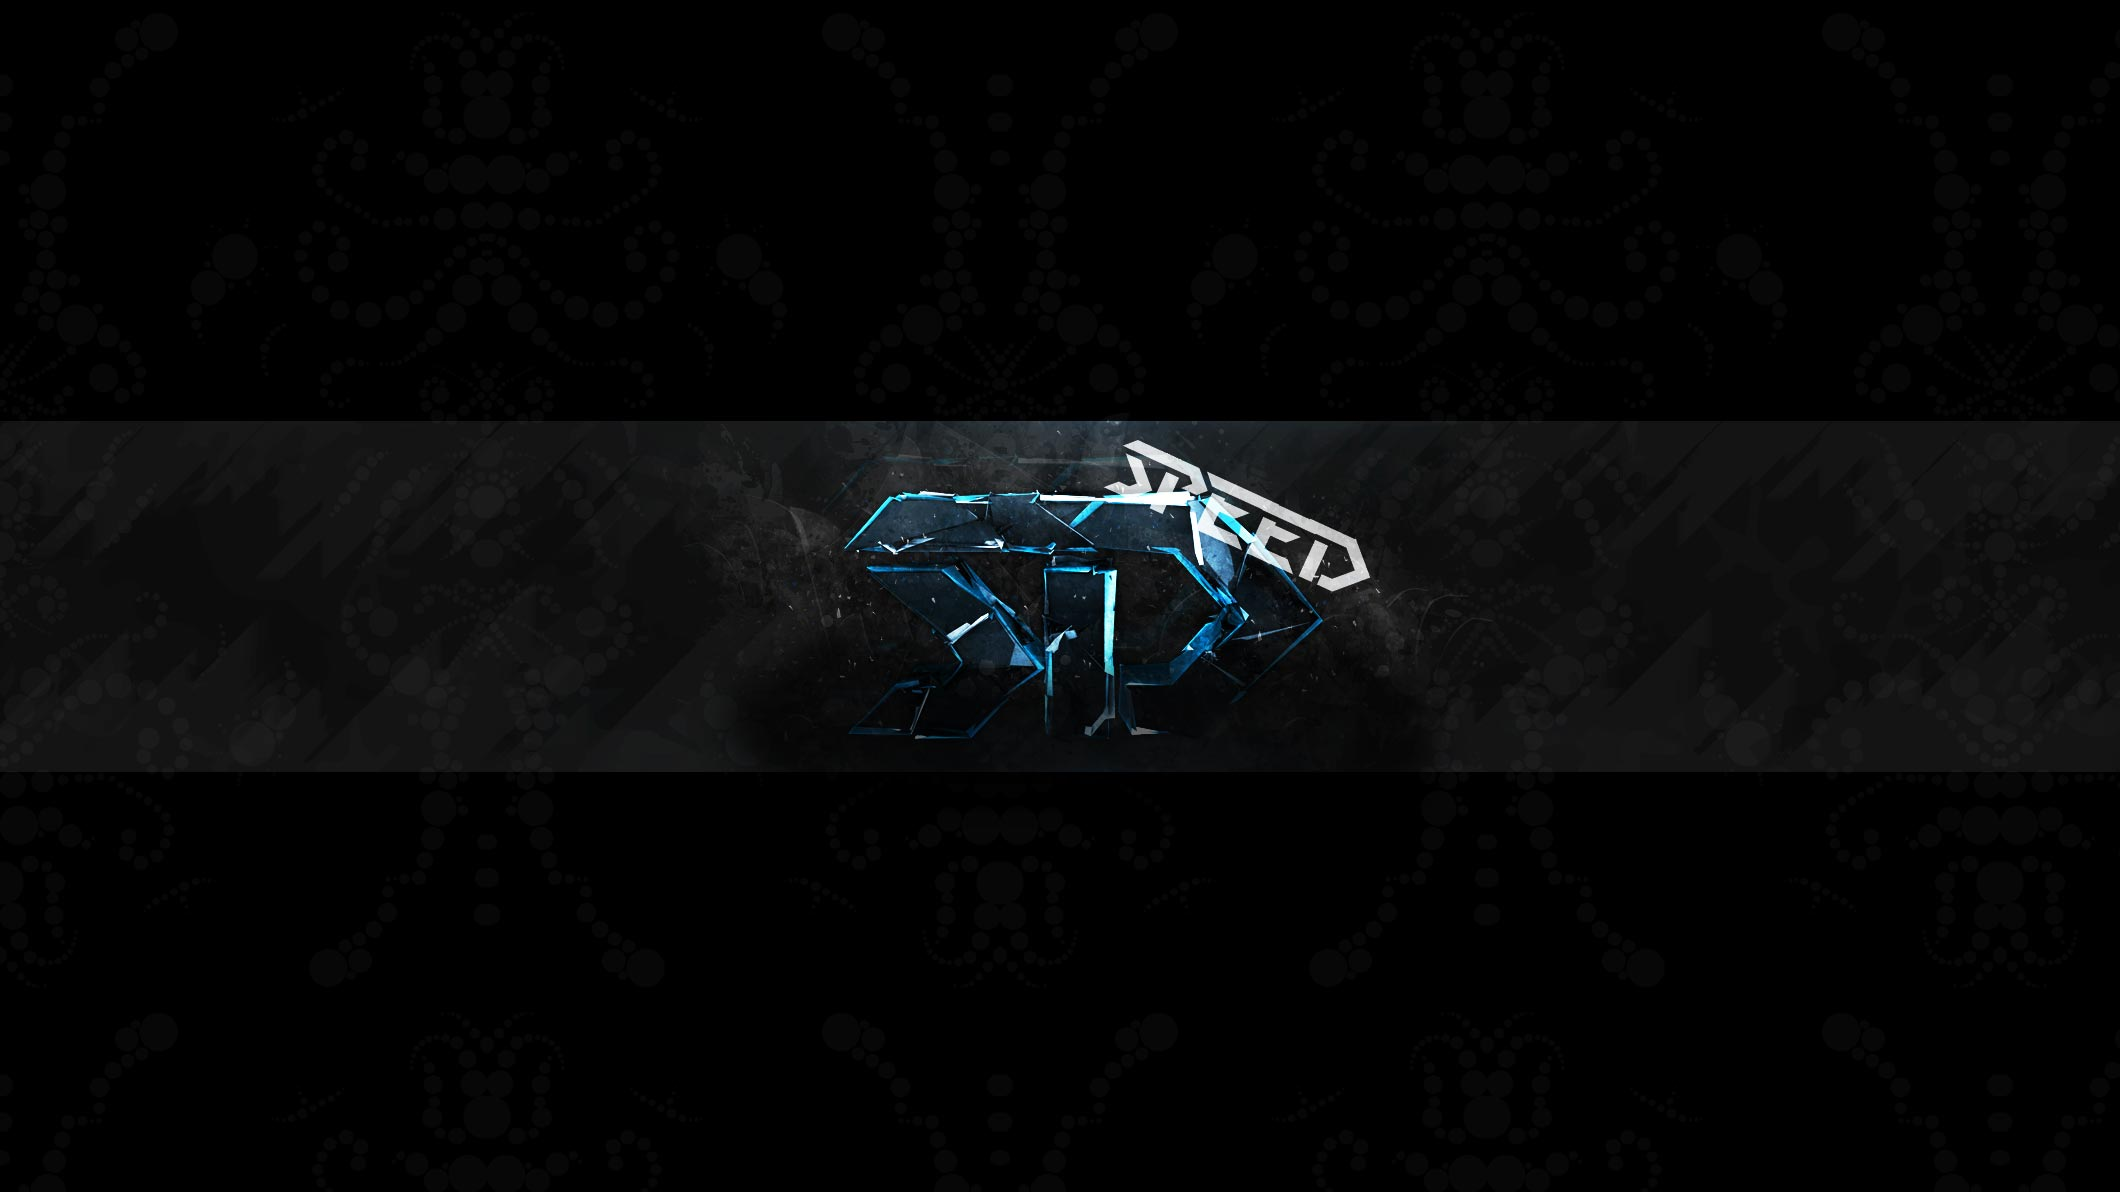 this is a youtube banner i made for myself